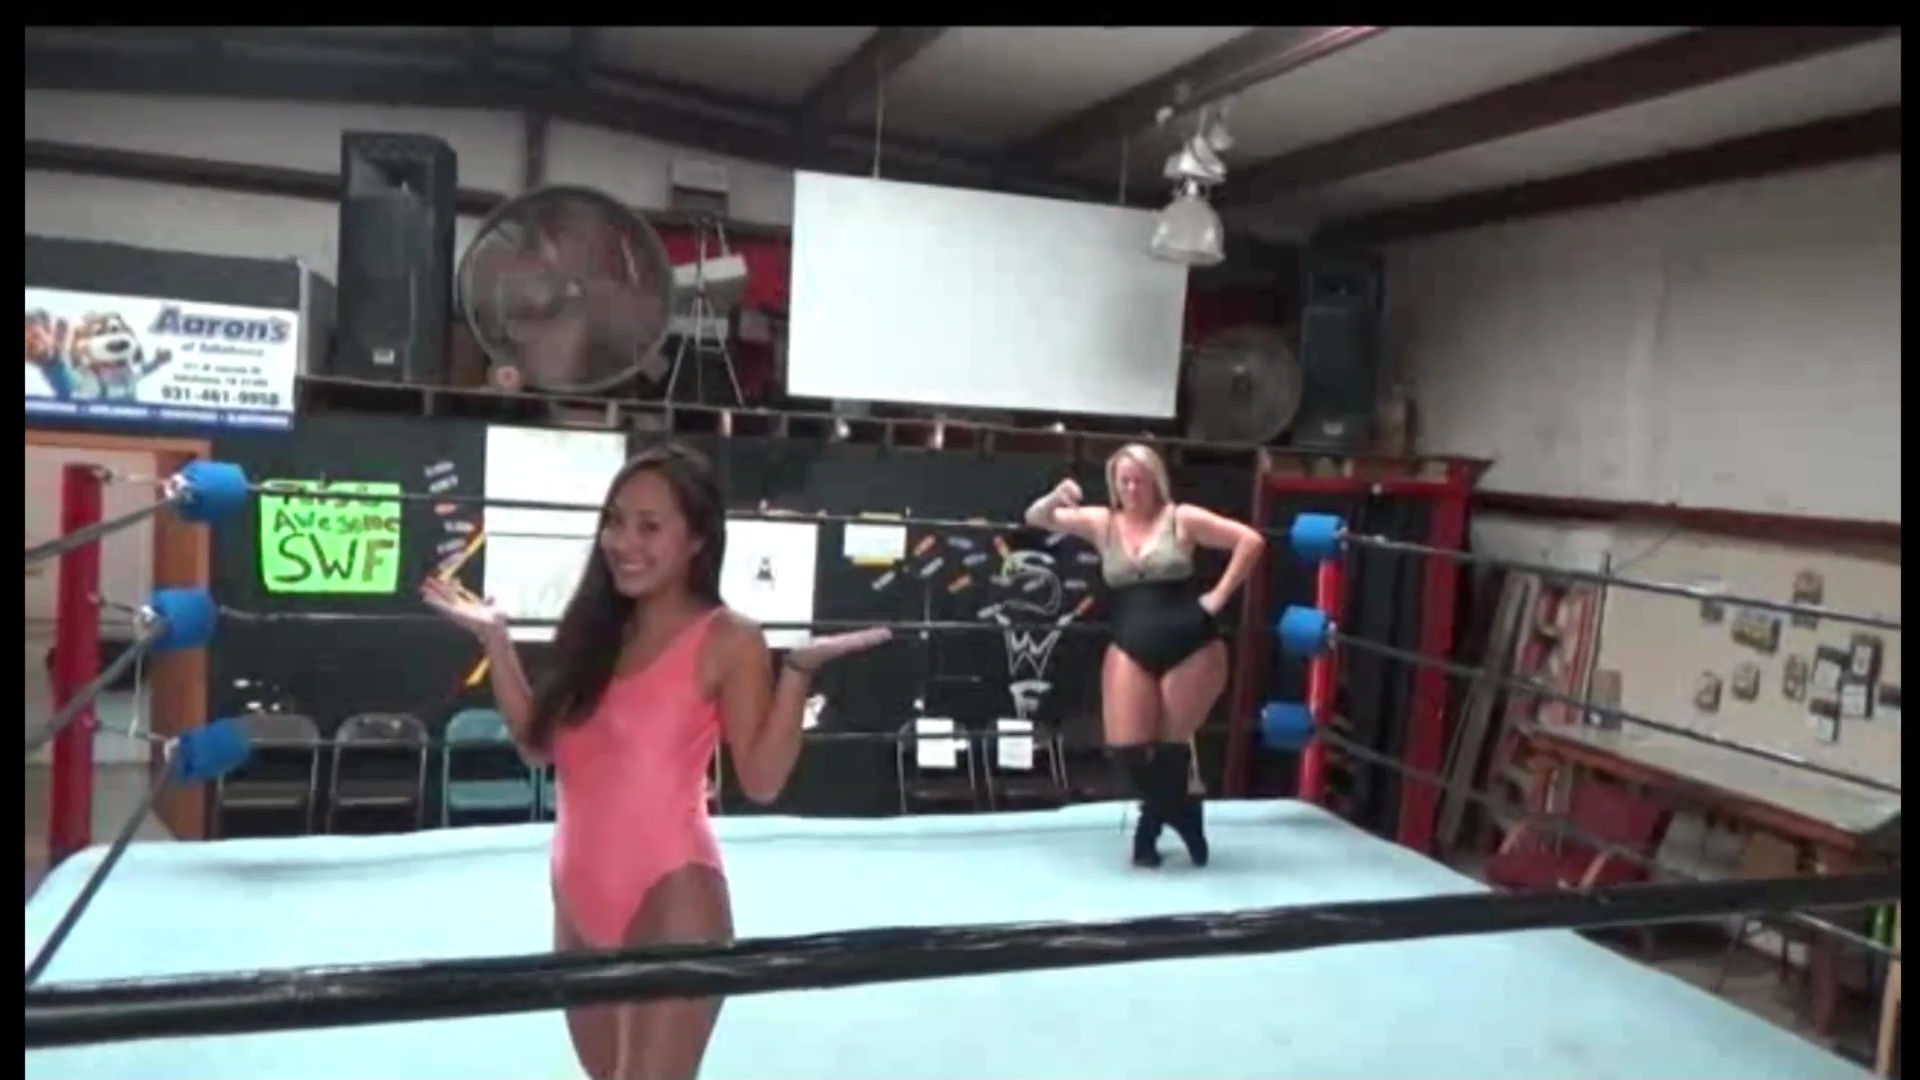 Malibu vs Sumiko - Big vs Small - Women's Pro Wrestling - UWW